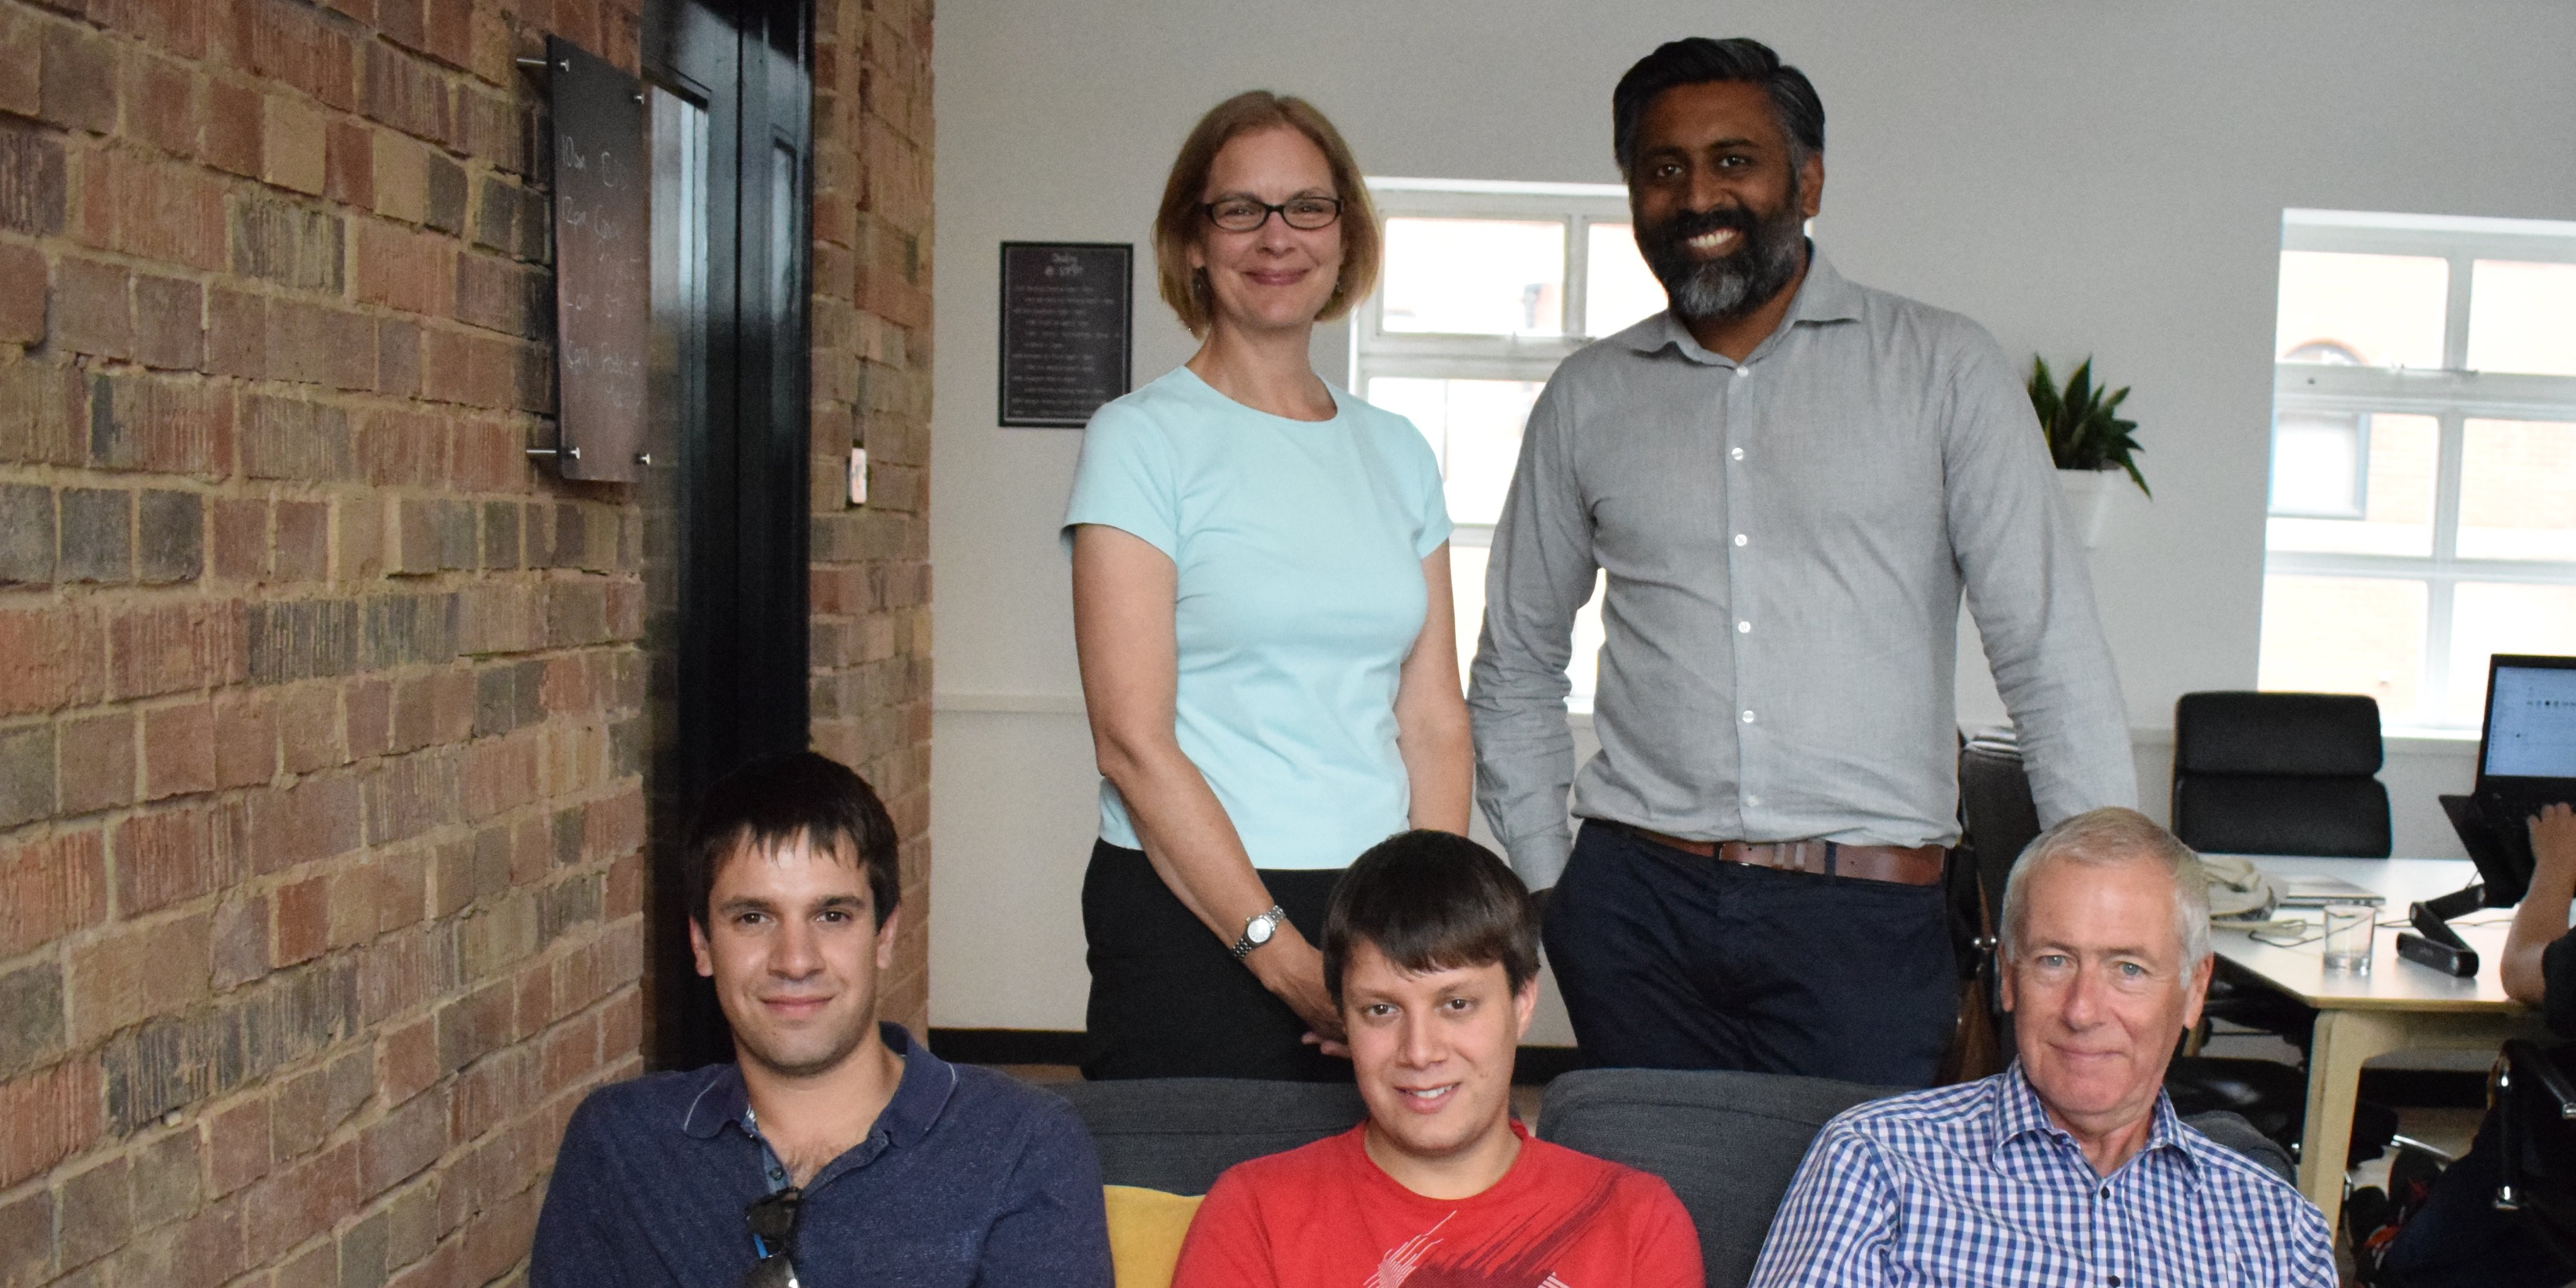 Six business leaders join the STP team as Entrepreneurs in Residence